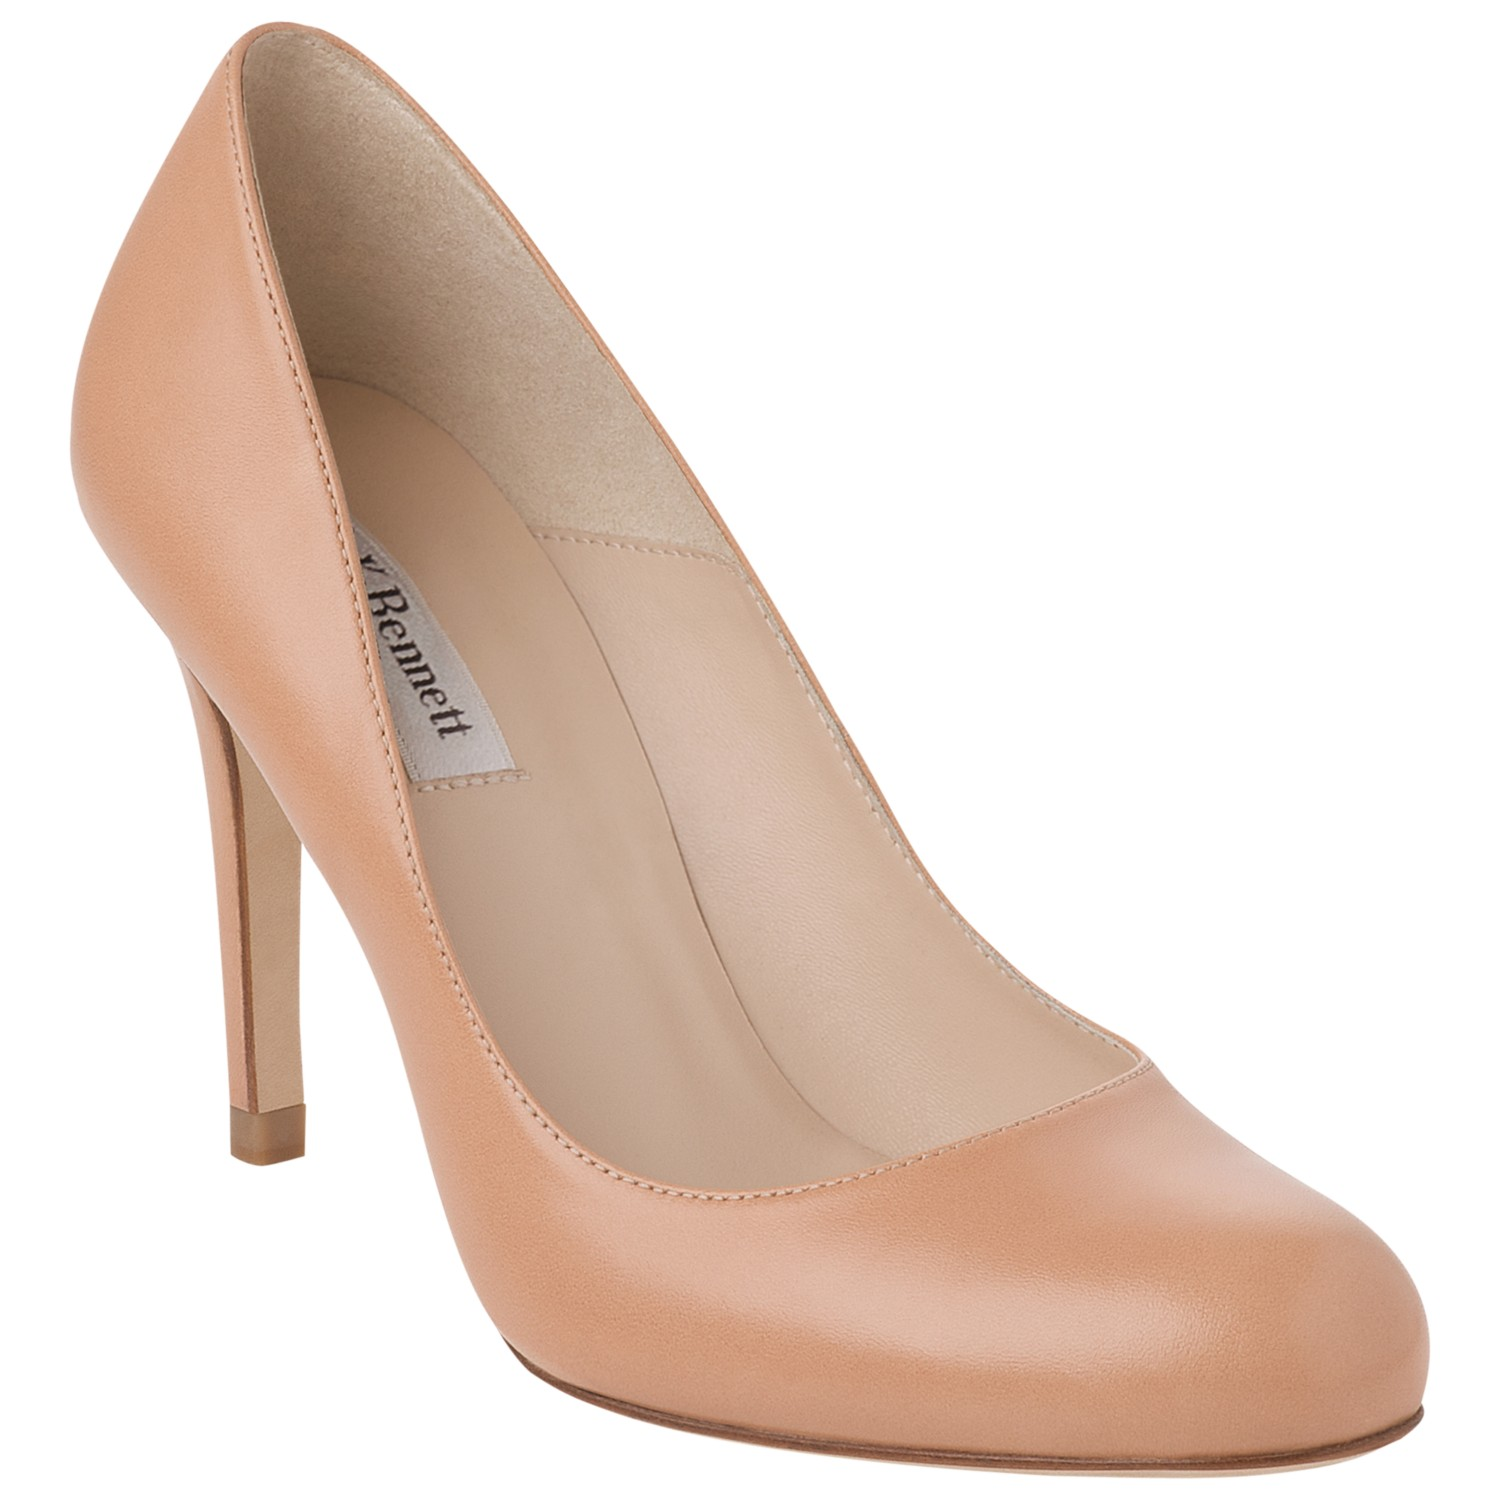 Blush Colored Shoes Heels